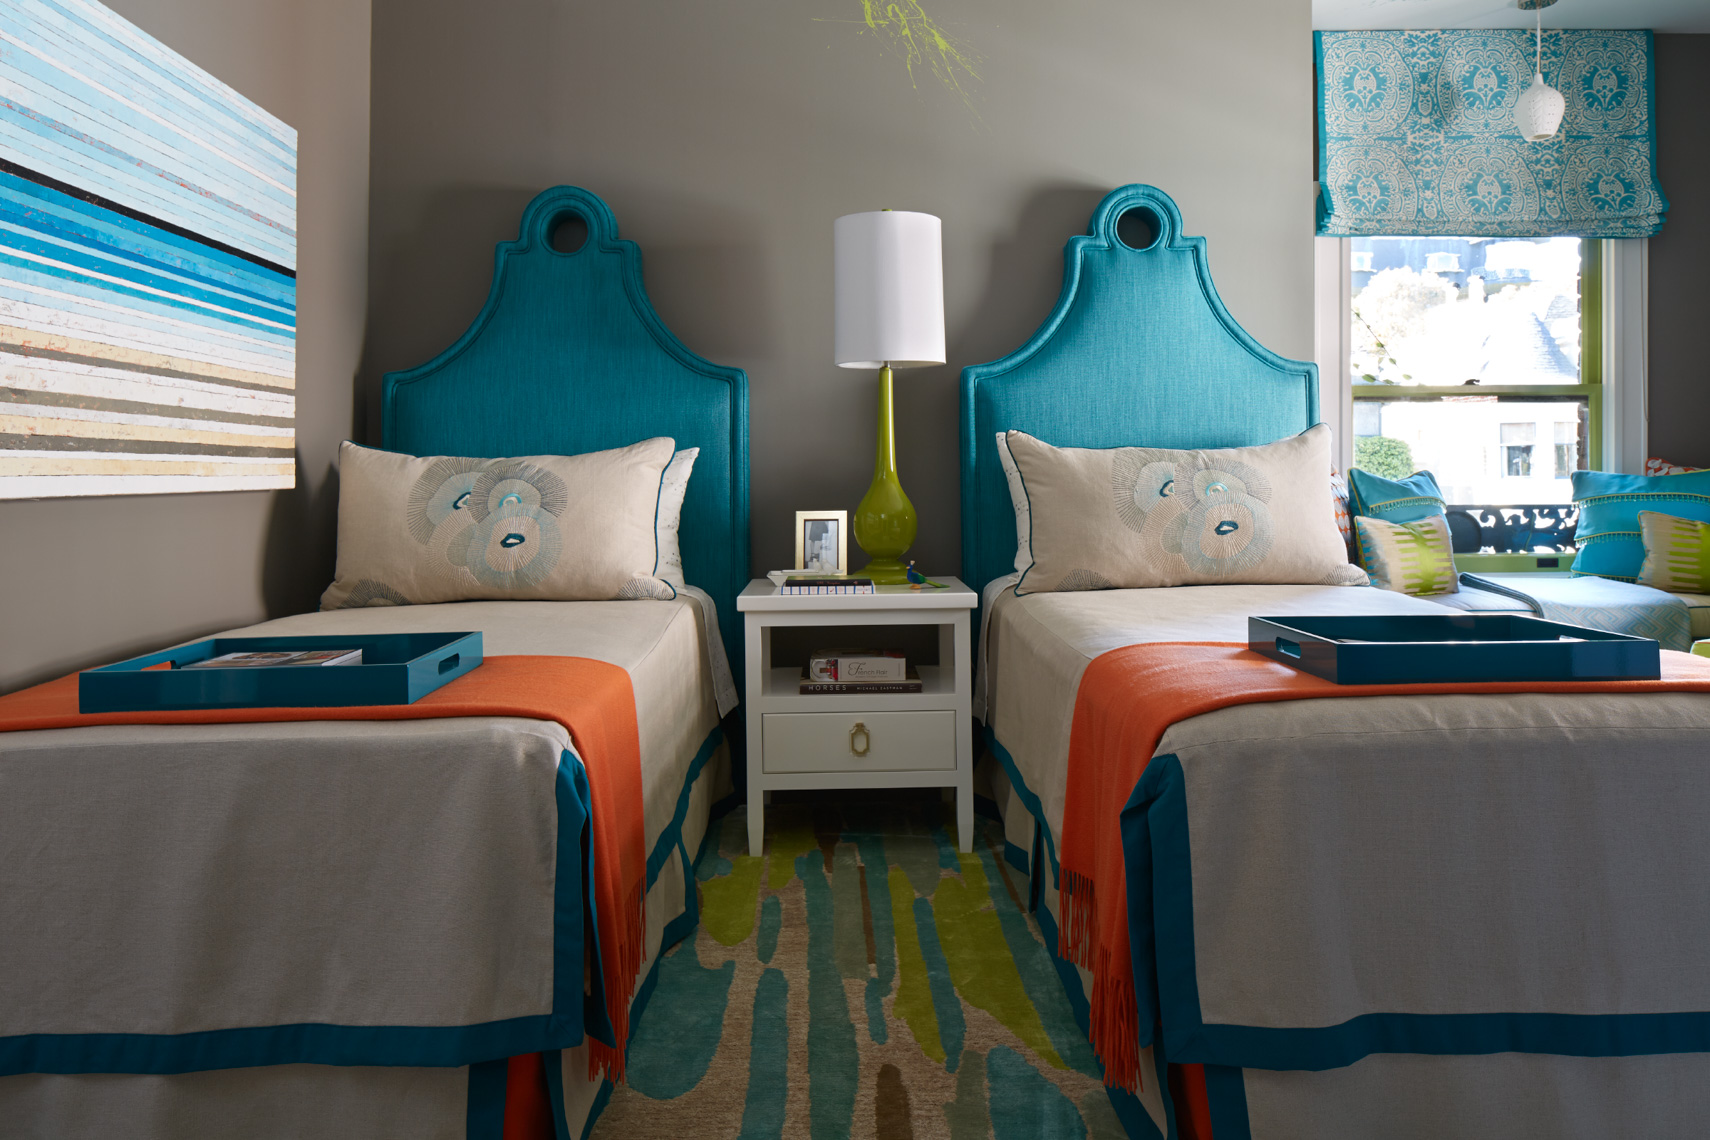 set of twin beds with blue headboards and bedding with orange blankets